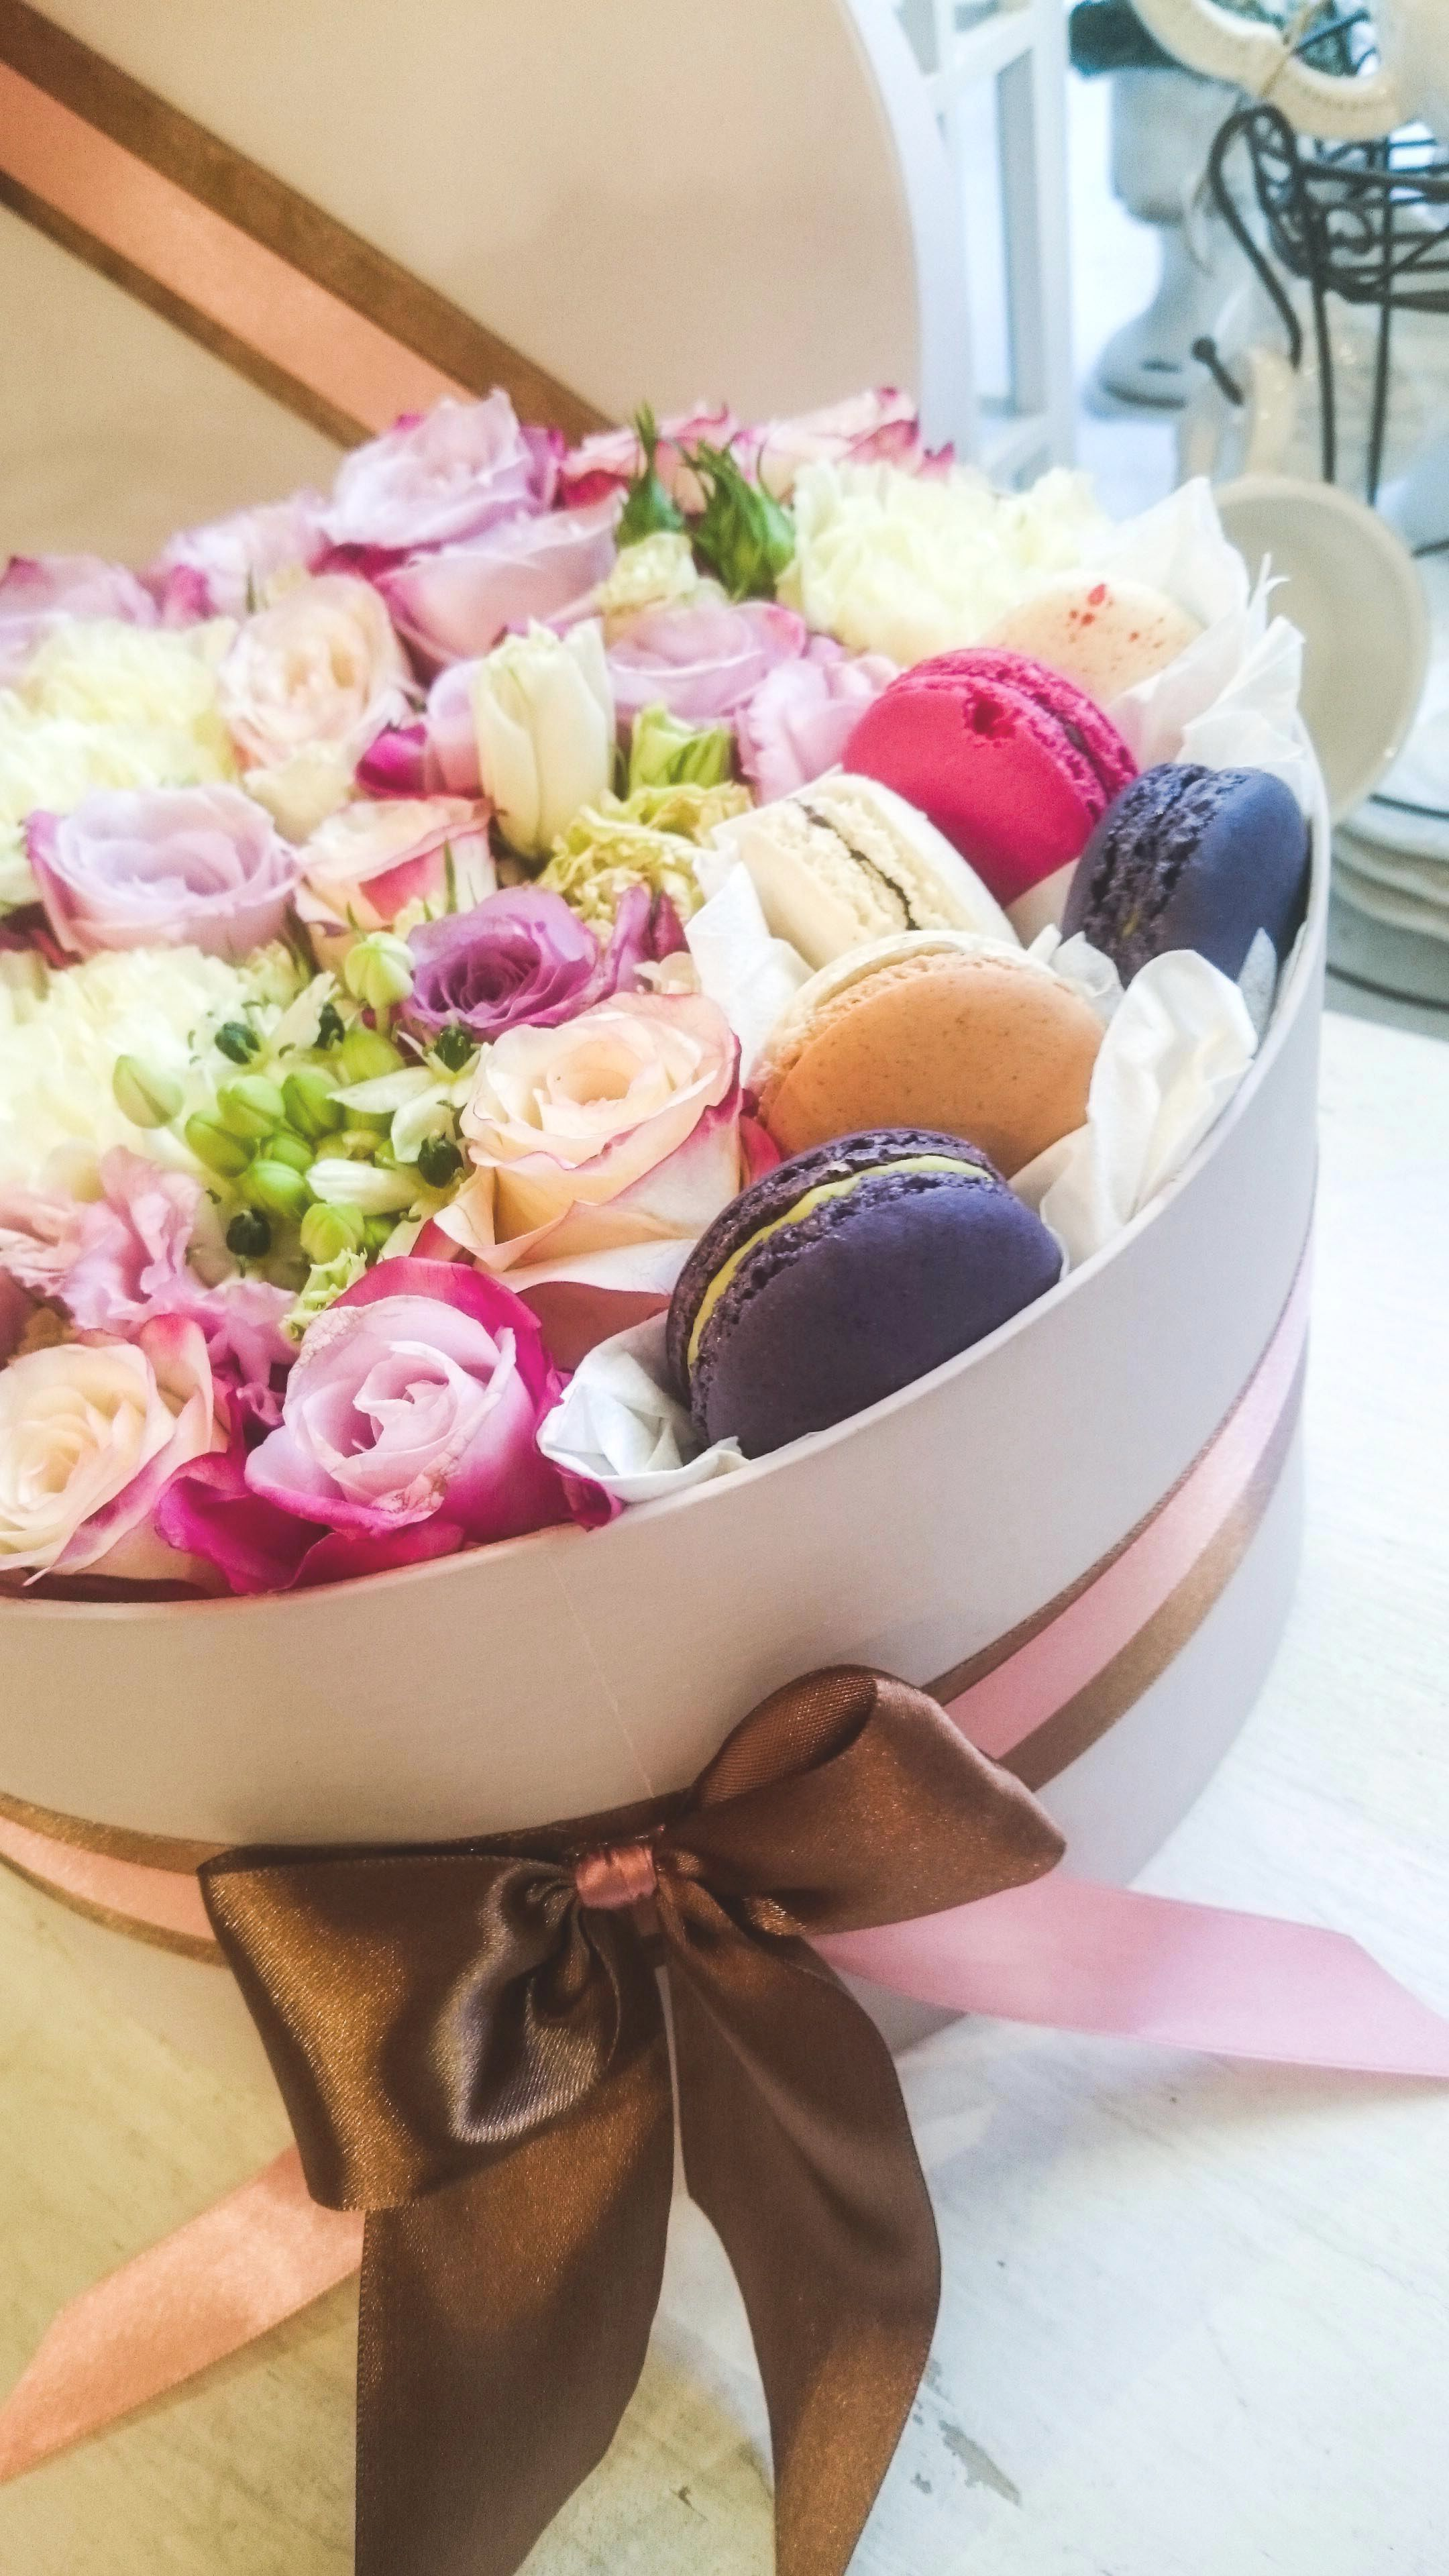 Flower box with macarons flower boxes virgdobozok pinterest flower box with macarons izmirmasajfo Image collections